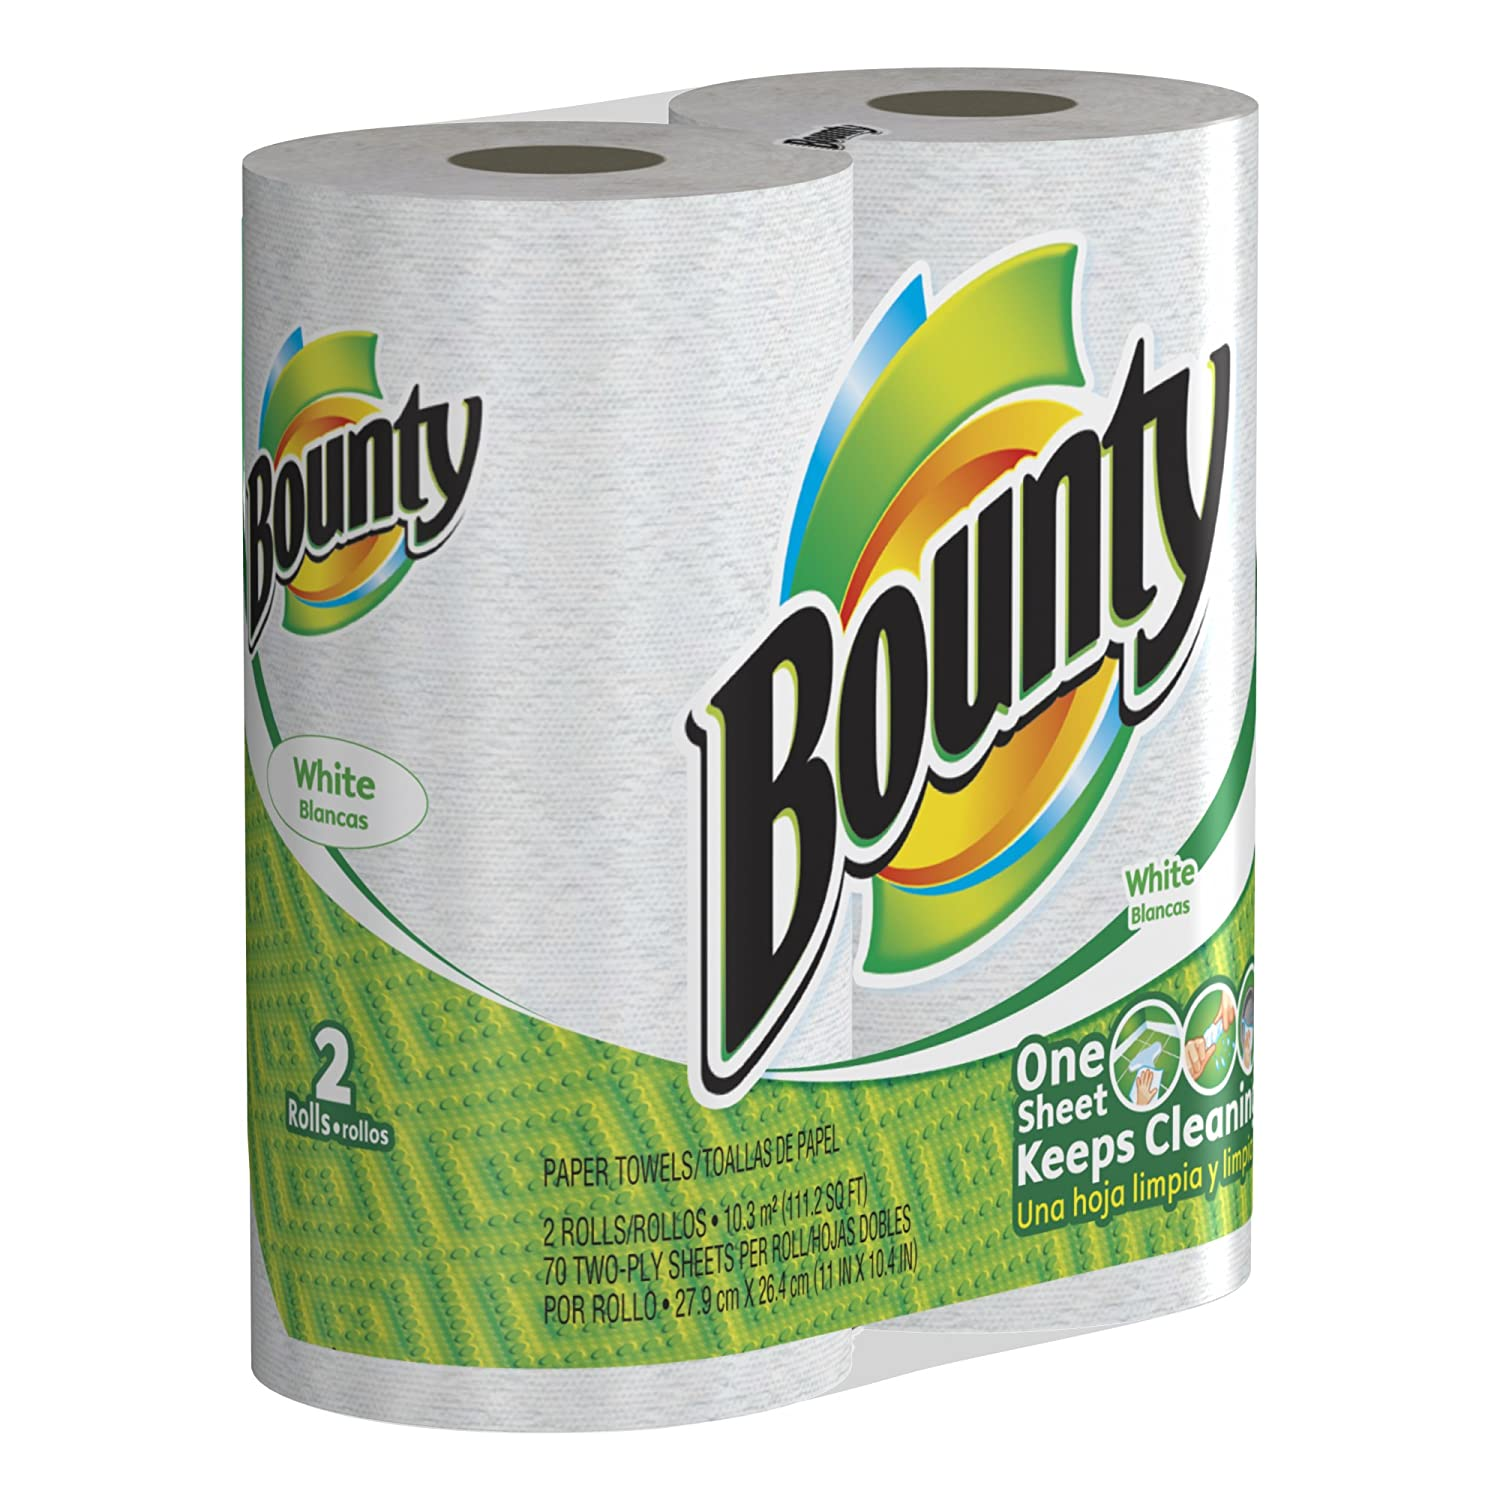 Amazon.com: Bounty Value Roll, White, 2-Count (Pack of 12): Health & Personal Care